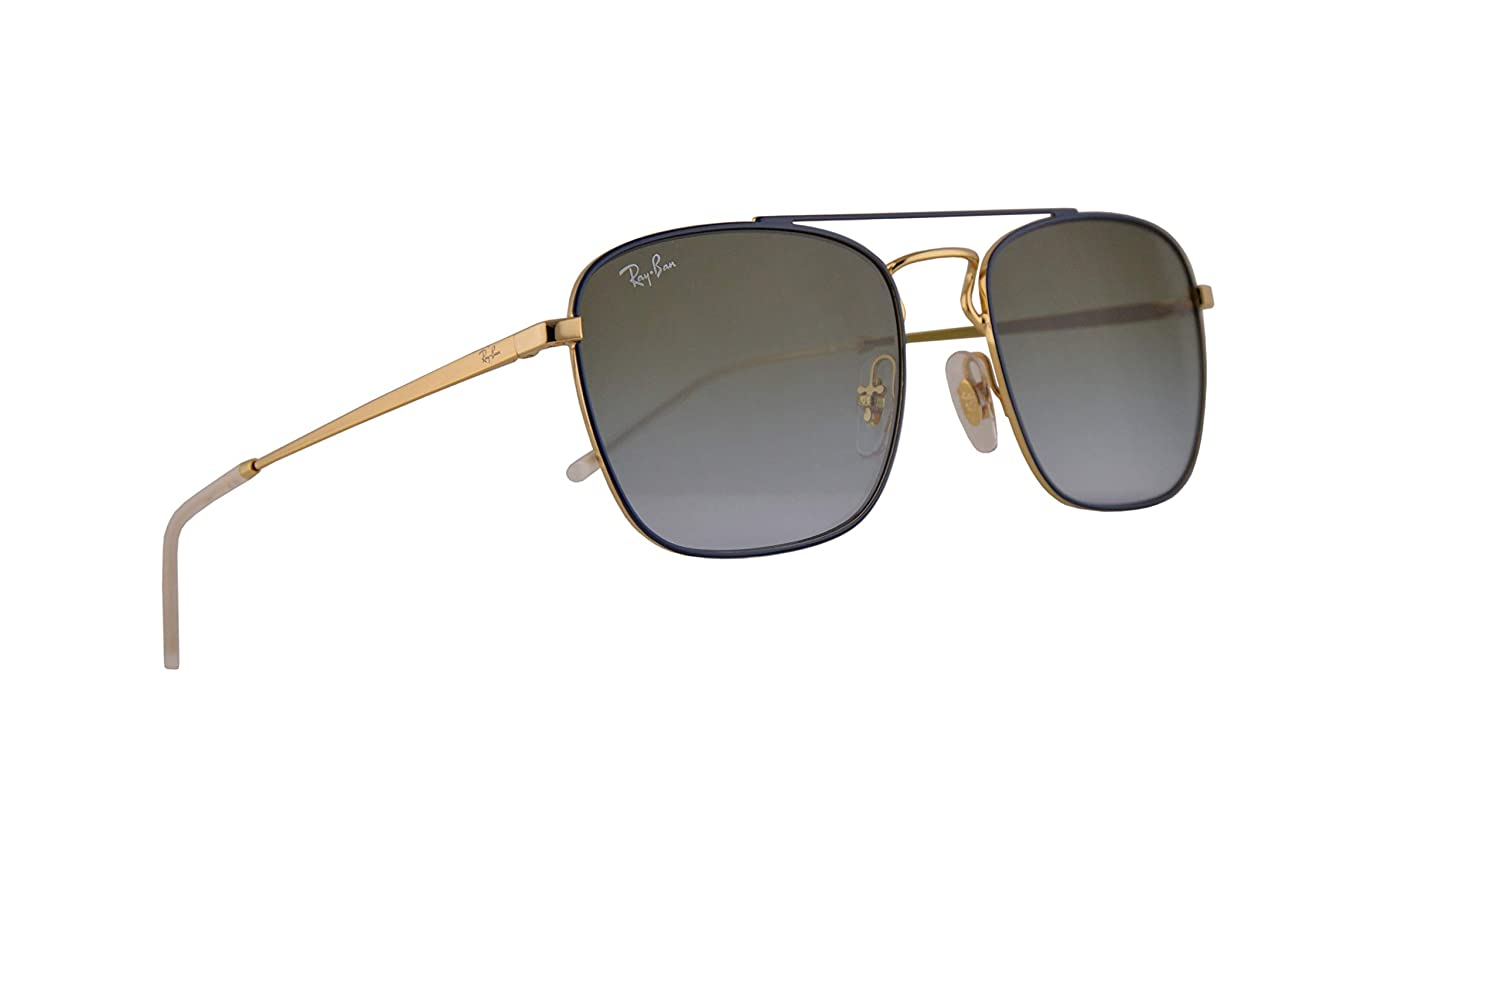 bbbe70b791d Amazon.com  Ray-Ban RB3588 Sunglasses Gold Top On Blue w Light Blue  Gradient Green Lens 55mm 9062I7 RB 3588  Clothing